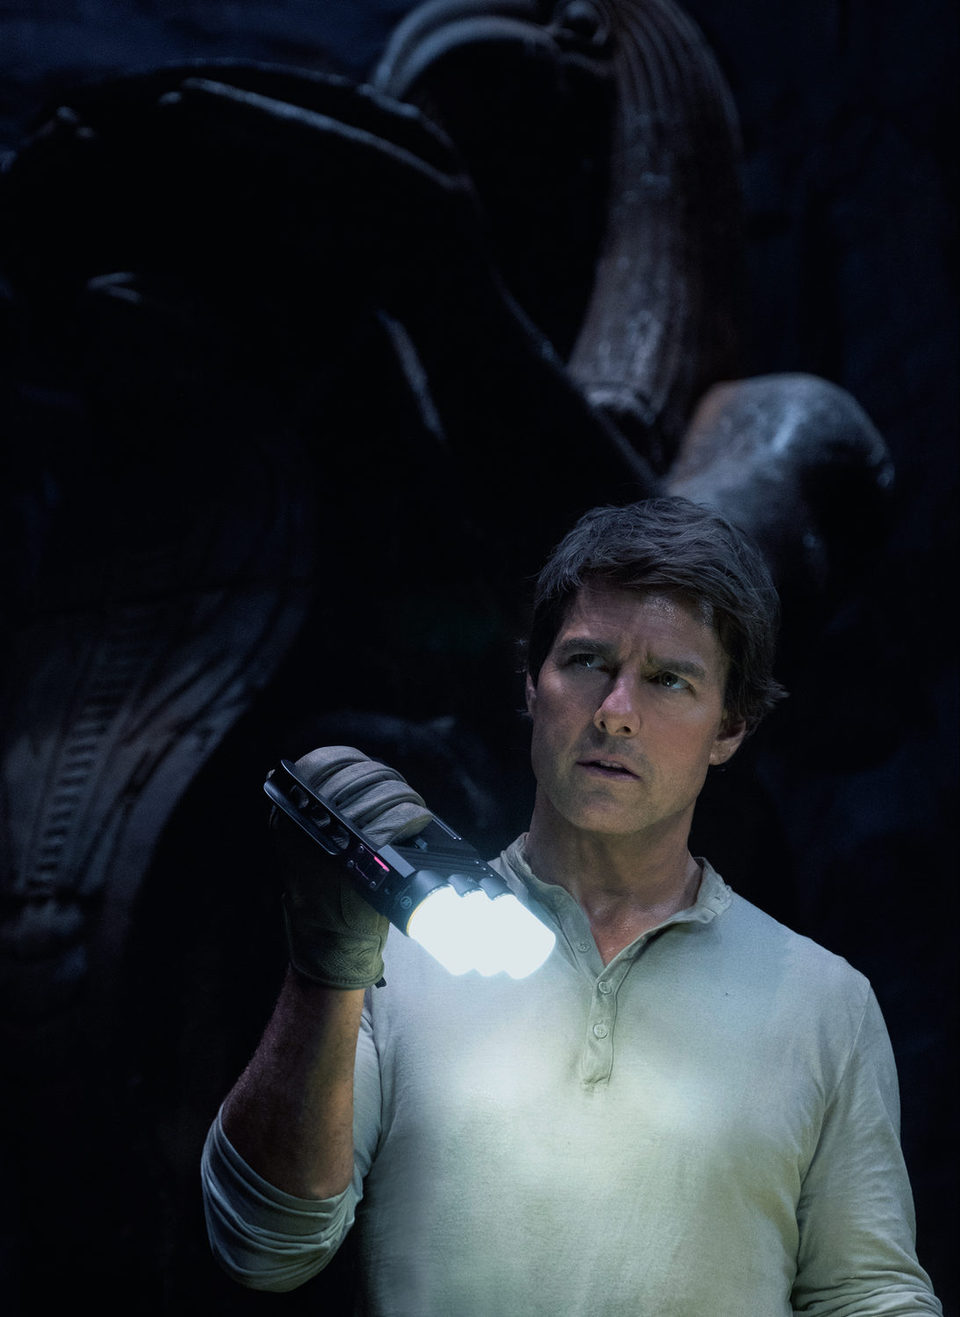 The mummy, fotograma 31 de 31